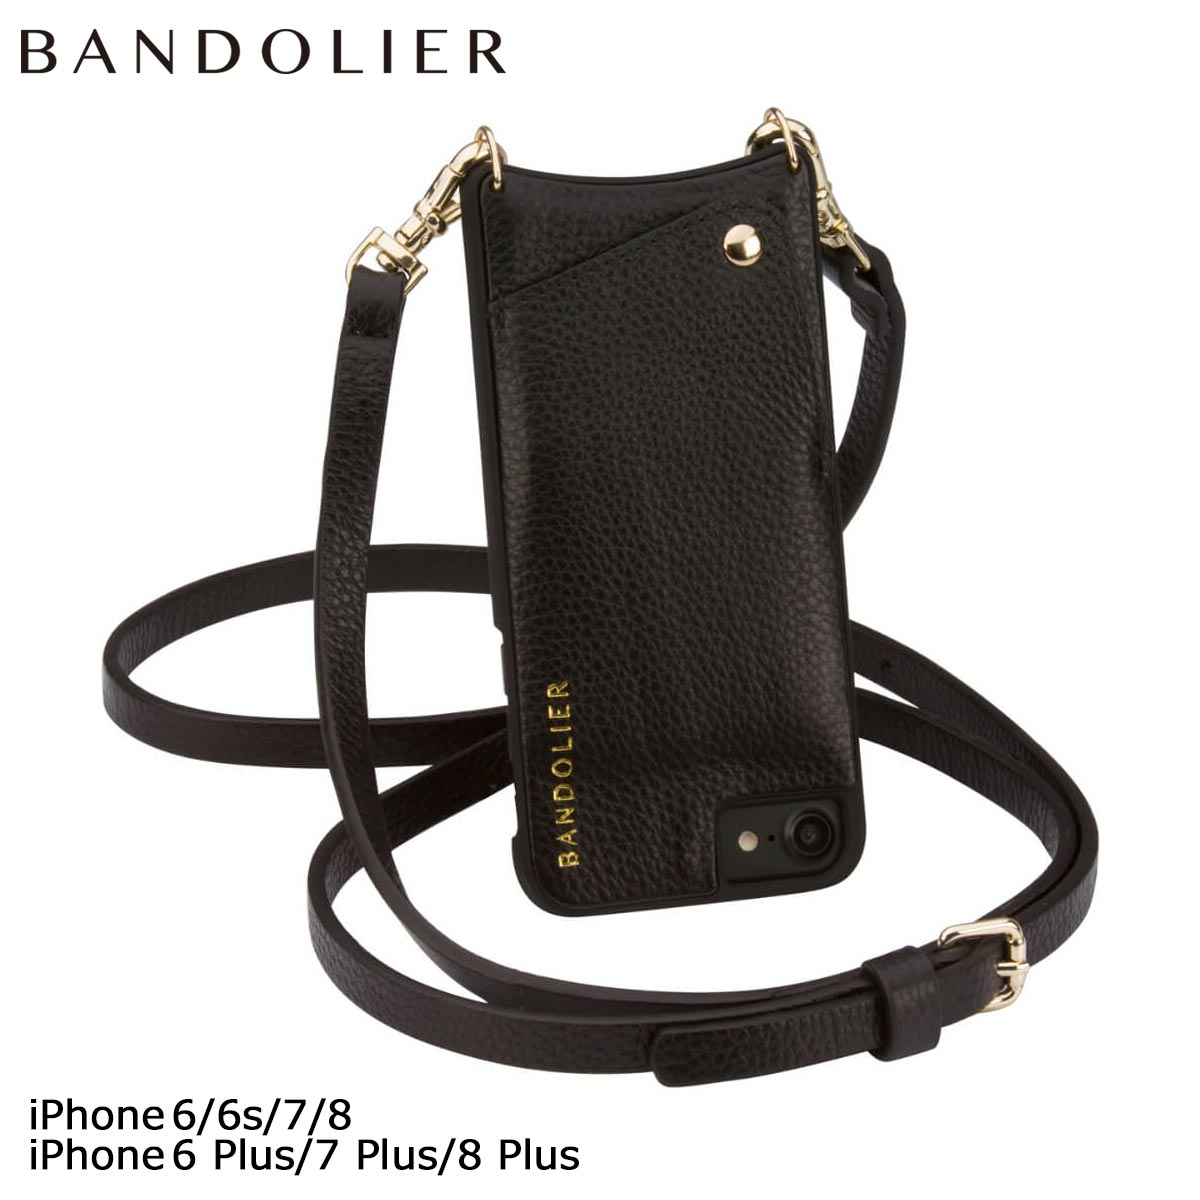 81de537f1ec2 Bandolier Band Re Yeah Iphone7 7plus 6s Case Smartphone Eyephone Plus  Leather Men Gap Dis Load Planned Reentry Load In Reservation Product 9 5